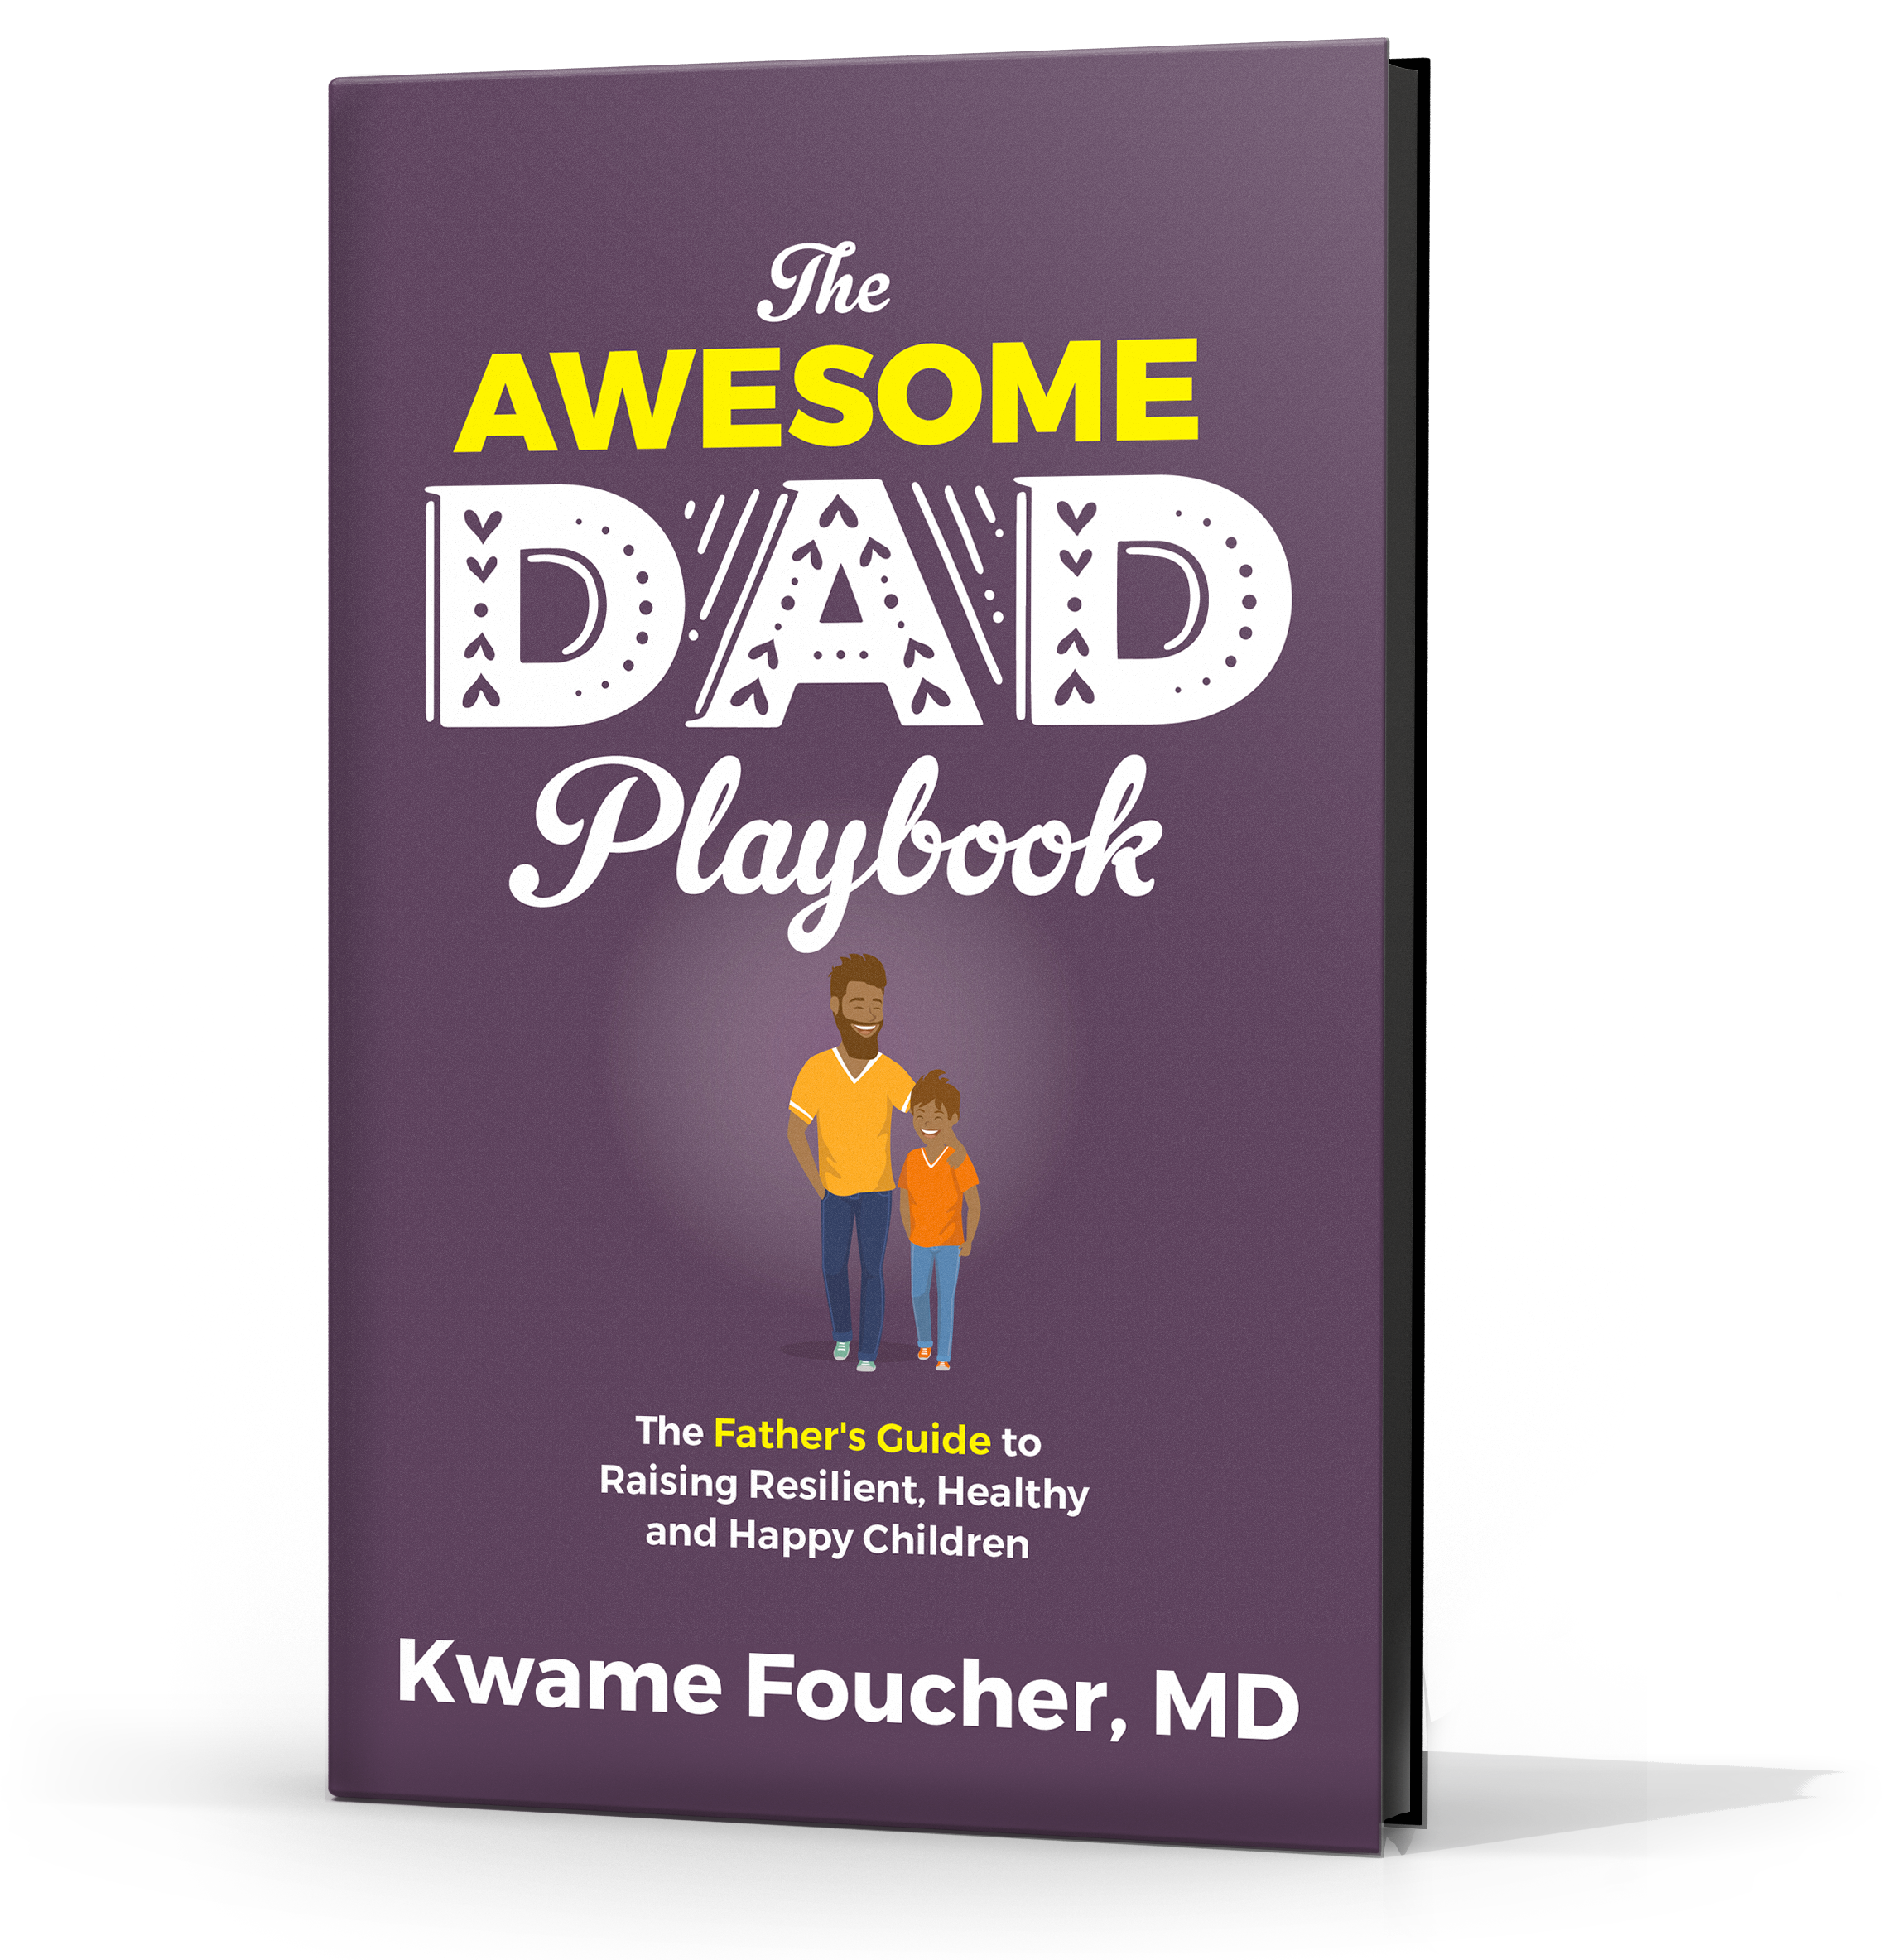 Physician and Bestselling Author Releases Transformative Handbook to Aid in Developing the Father-Child Bond